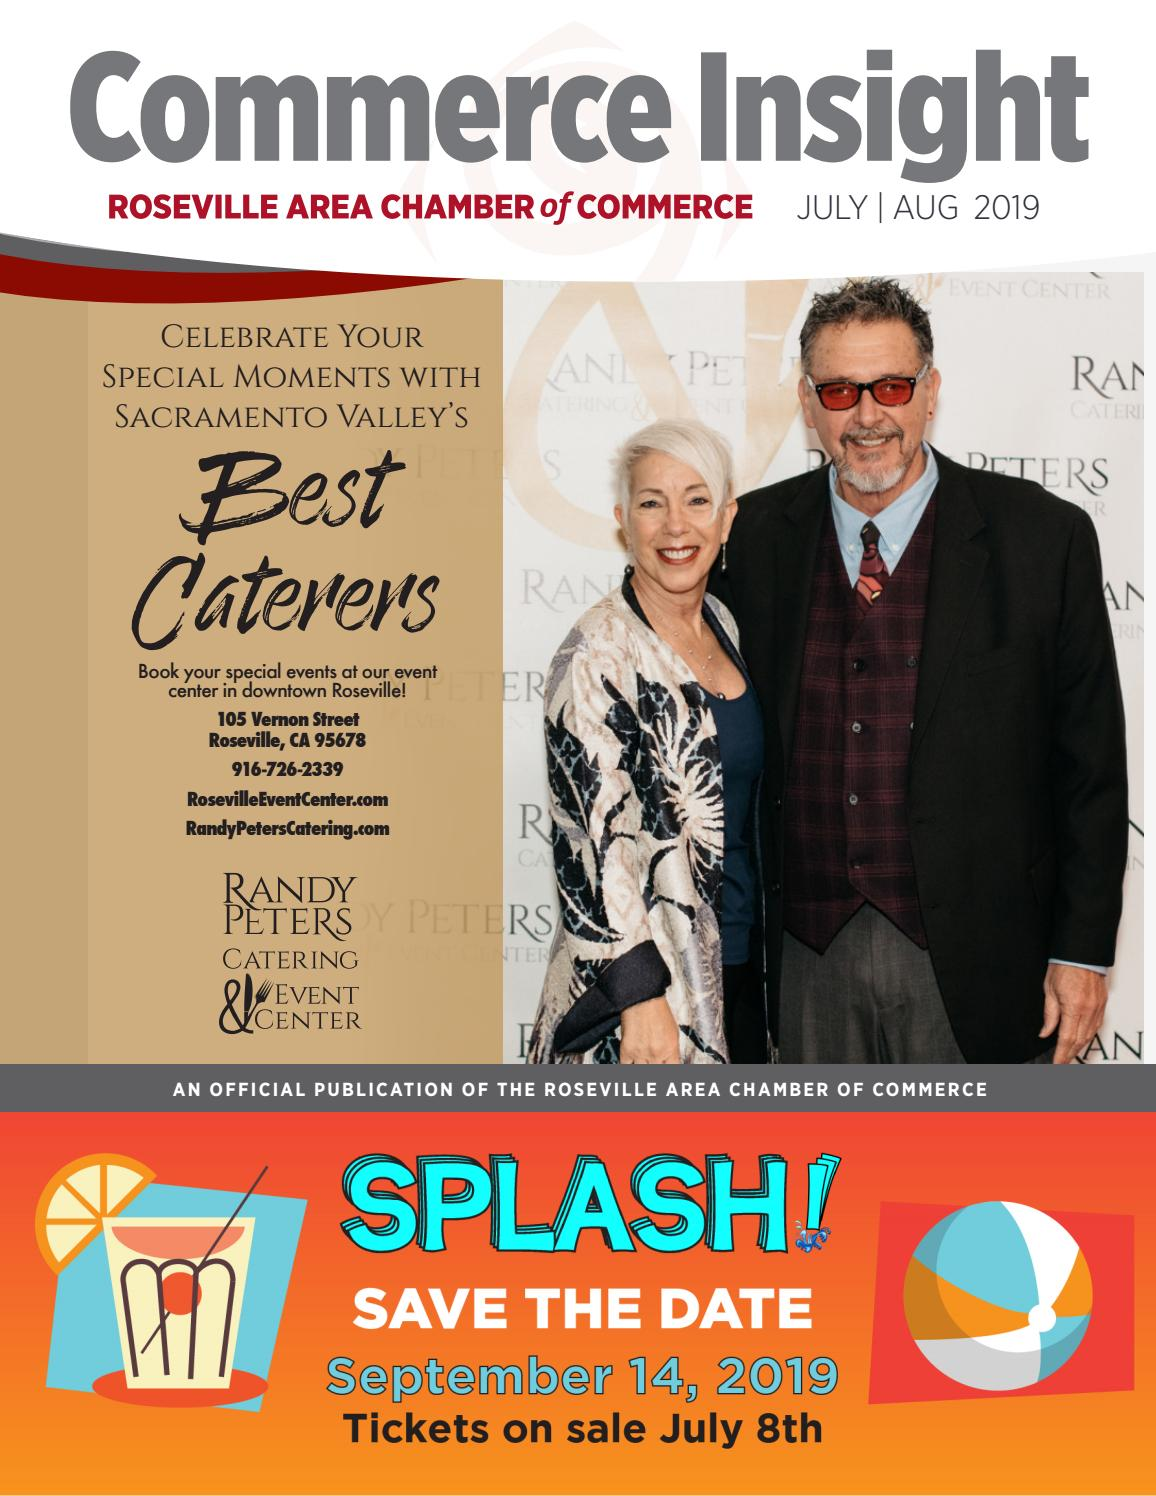 Fountains Roseville Events 2020.July August 2019 Commerce Insight By Roseville Area